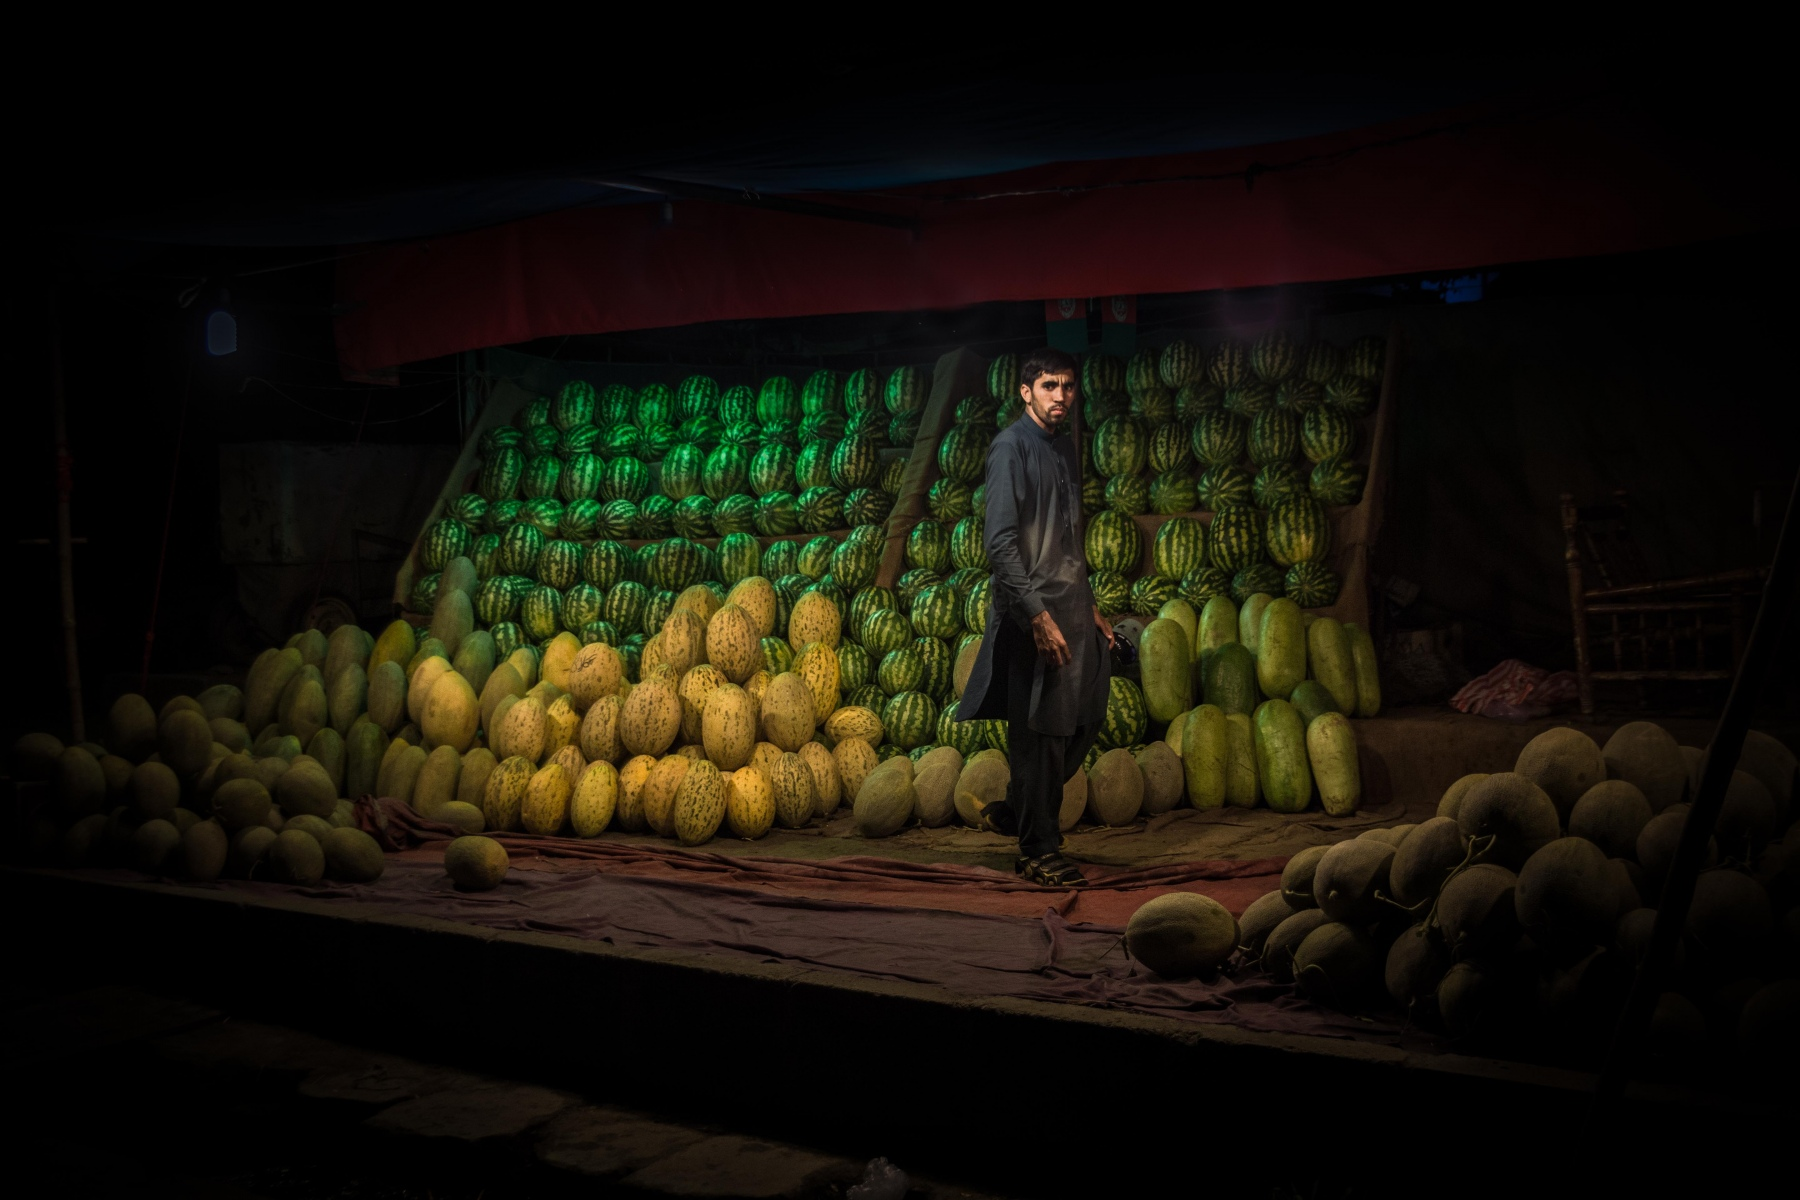 Man selling melons and water melons on a market in Kabul during the night